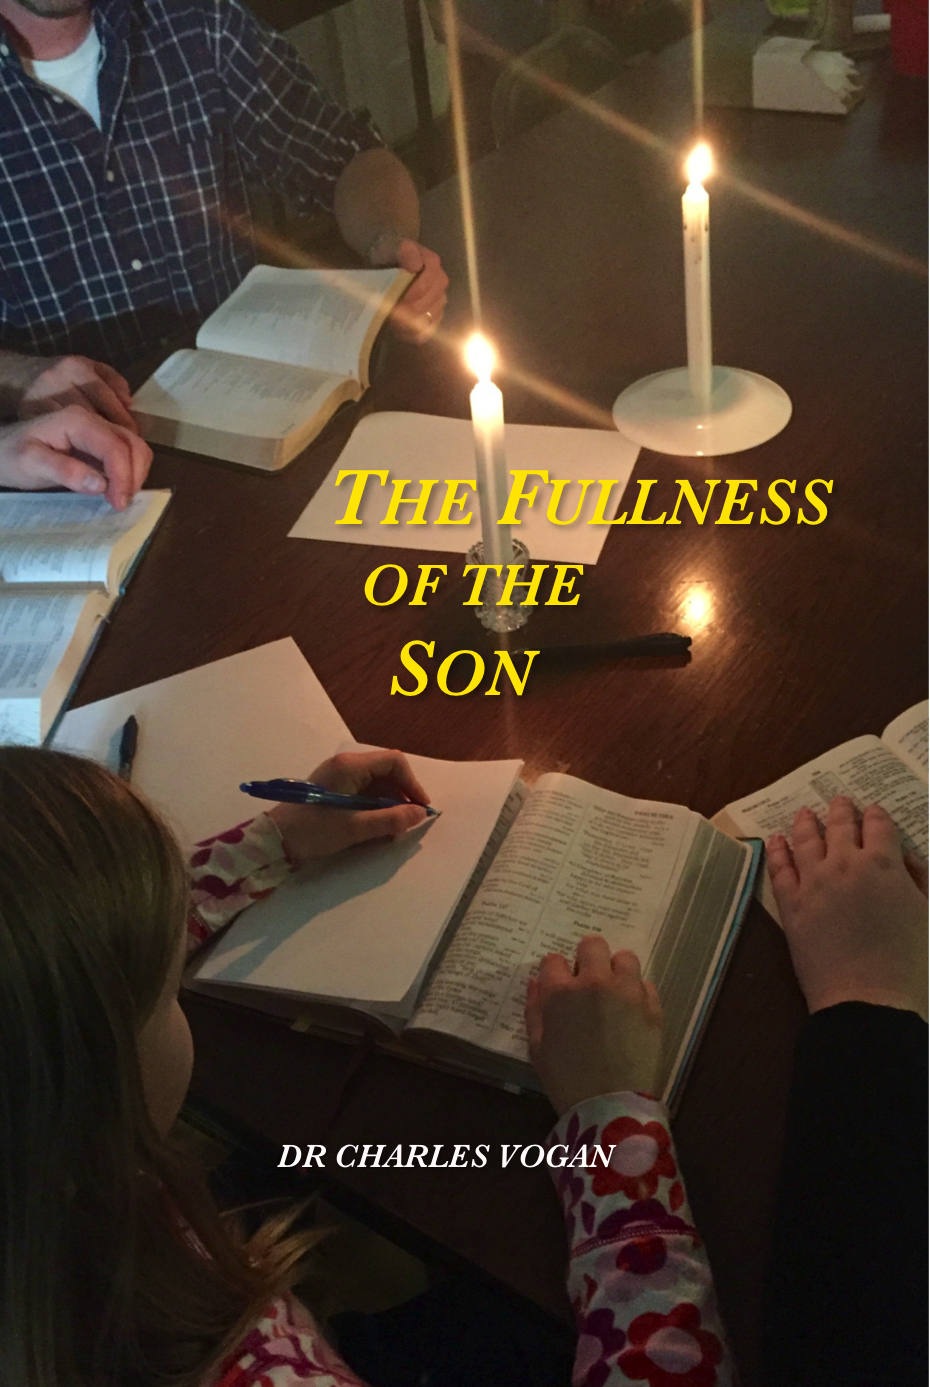 Fullness of the Son